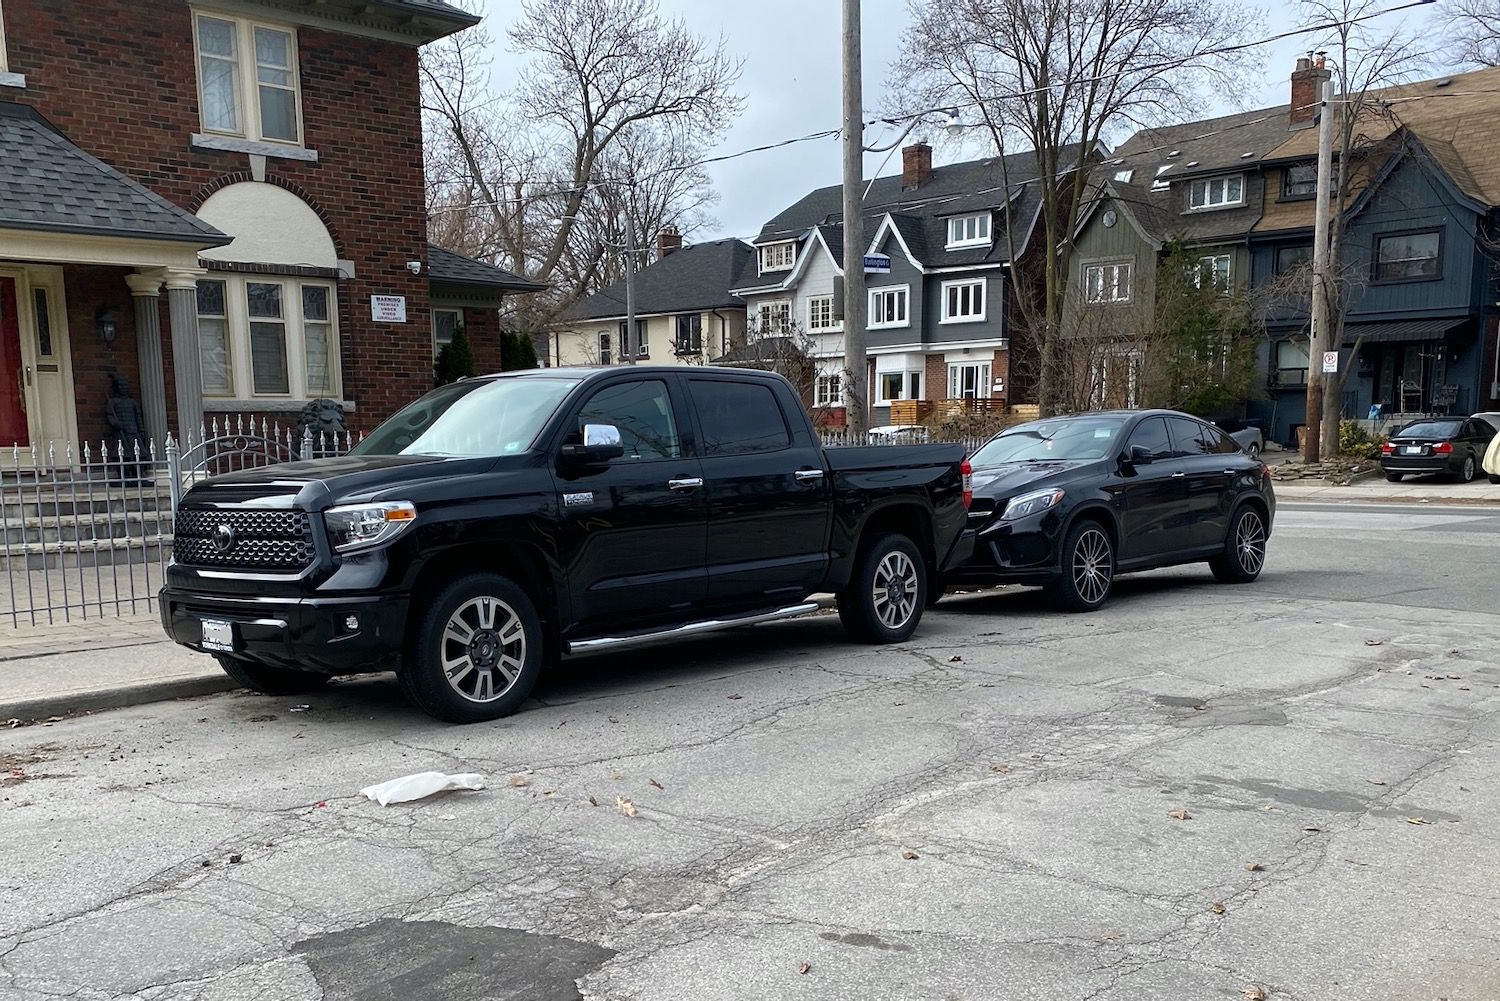 Should Drivers of SUVs and Pickups Pay More for Parking?